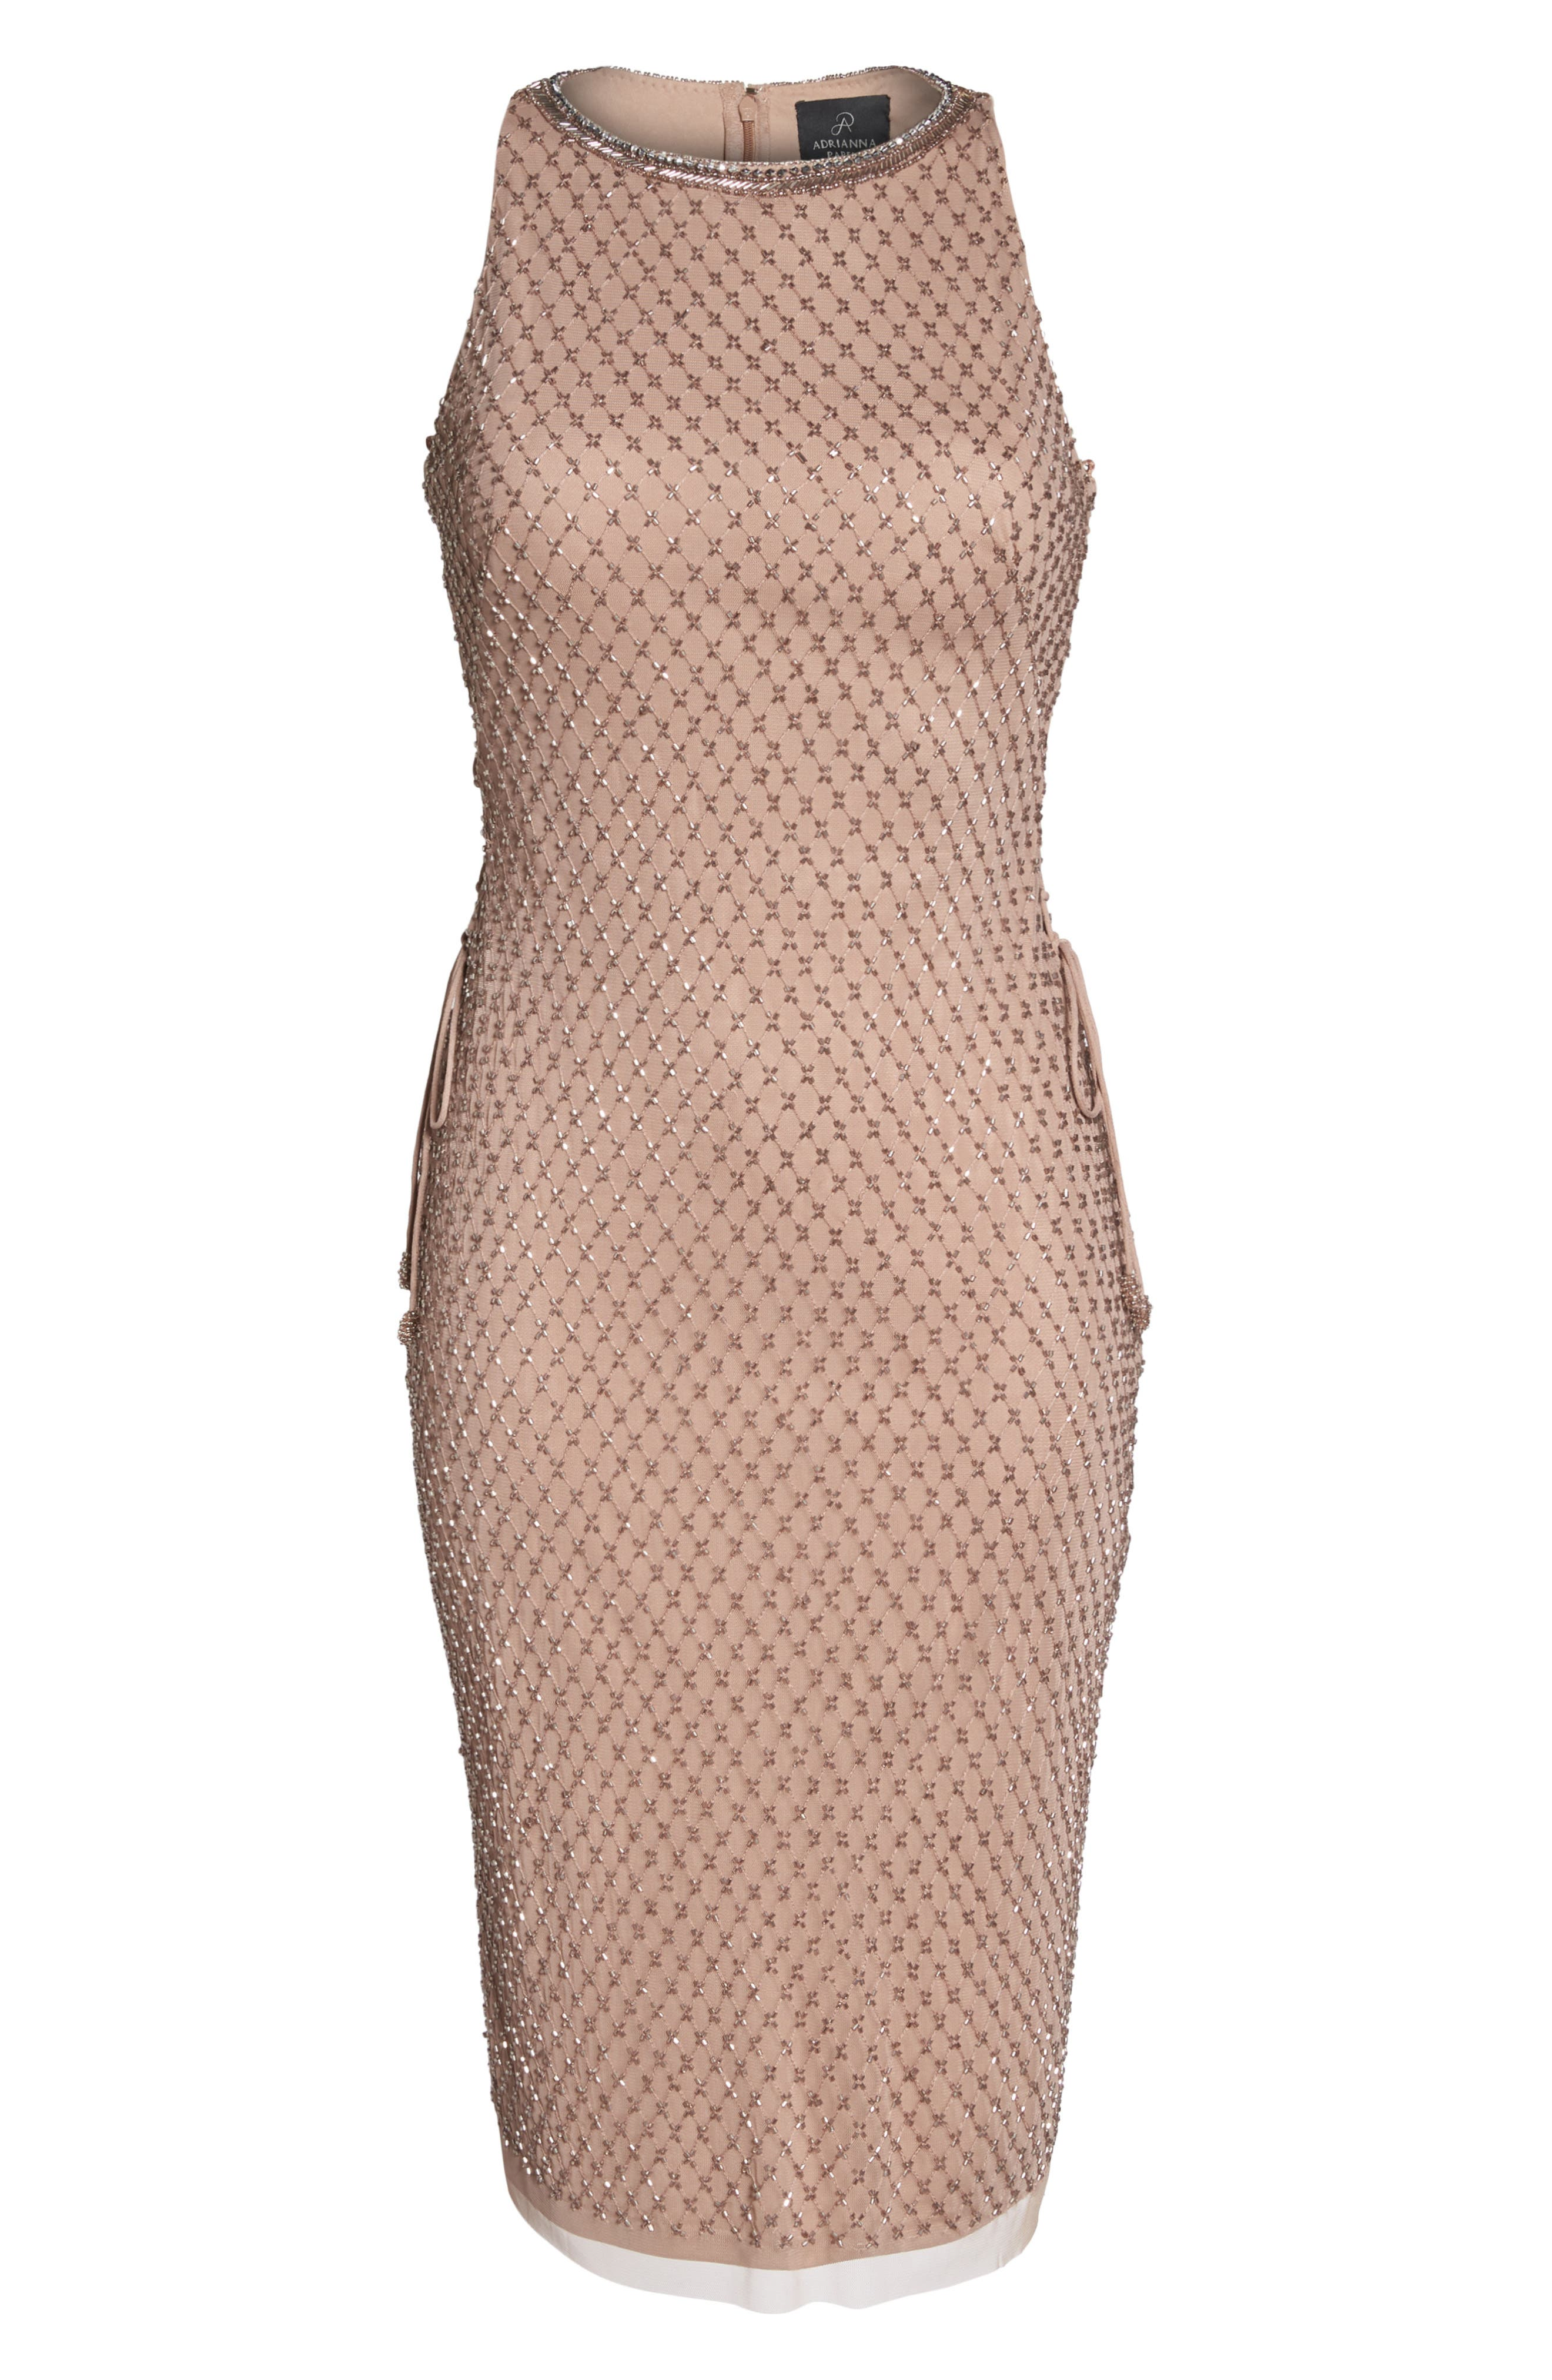 Beaded Lace-Up Dress,                             Alternate thumbnail 6, color,                             220